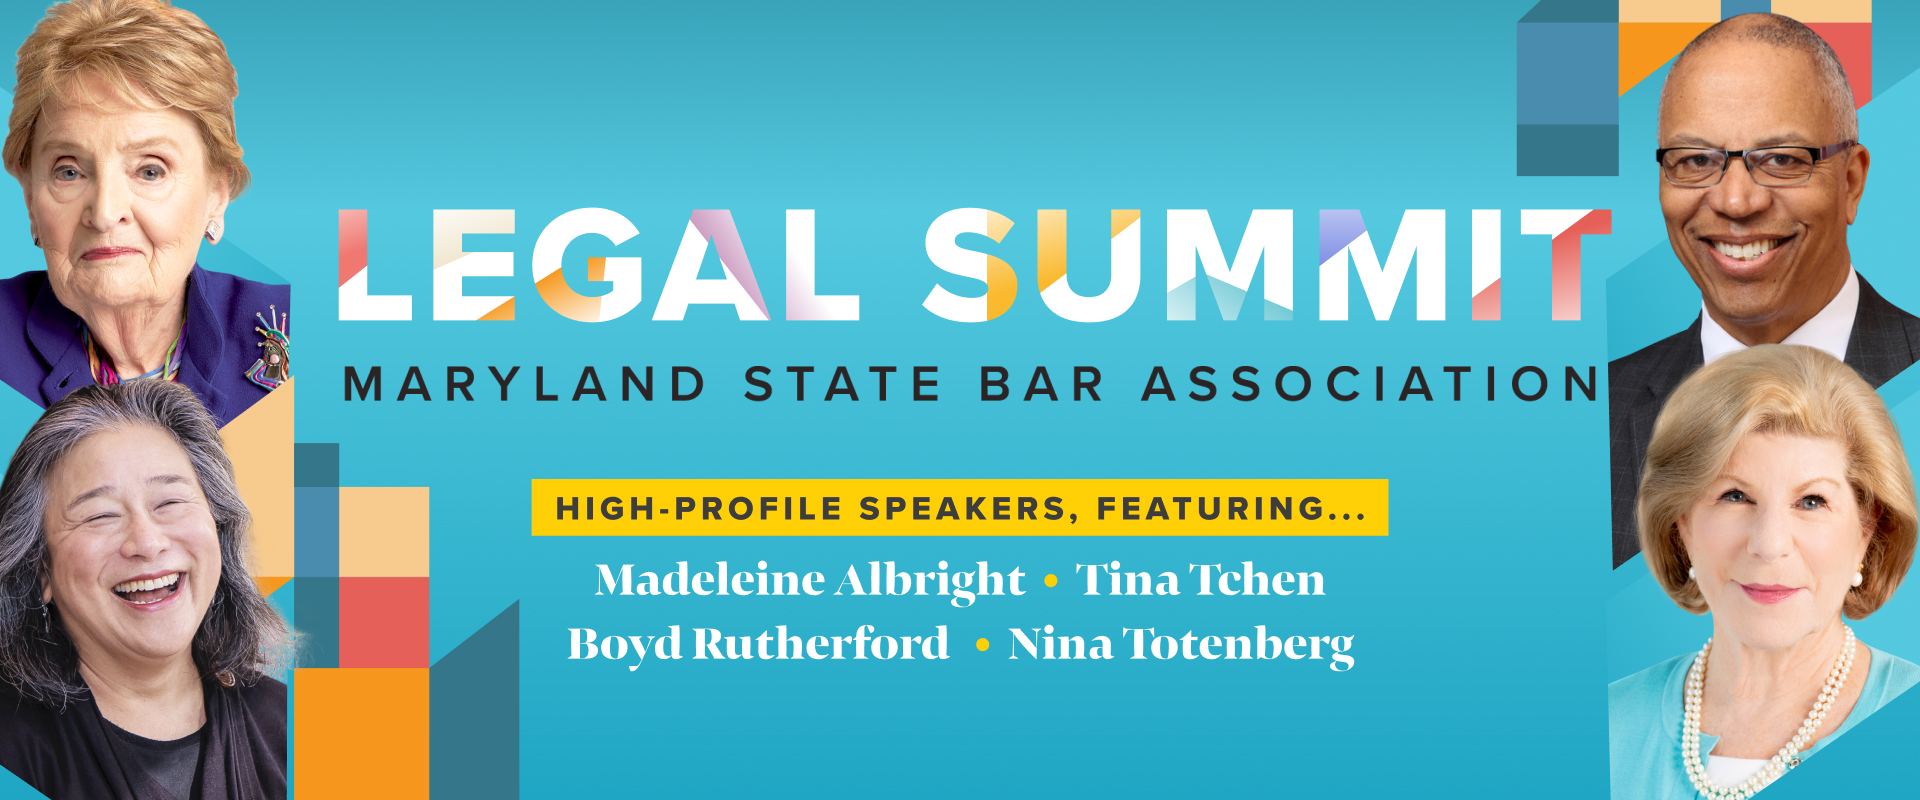 Top 5 Reasons to Attend the 2021 Legal Summit